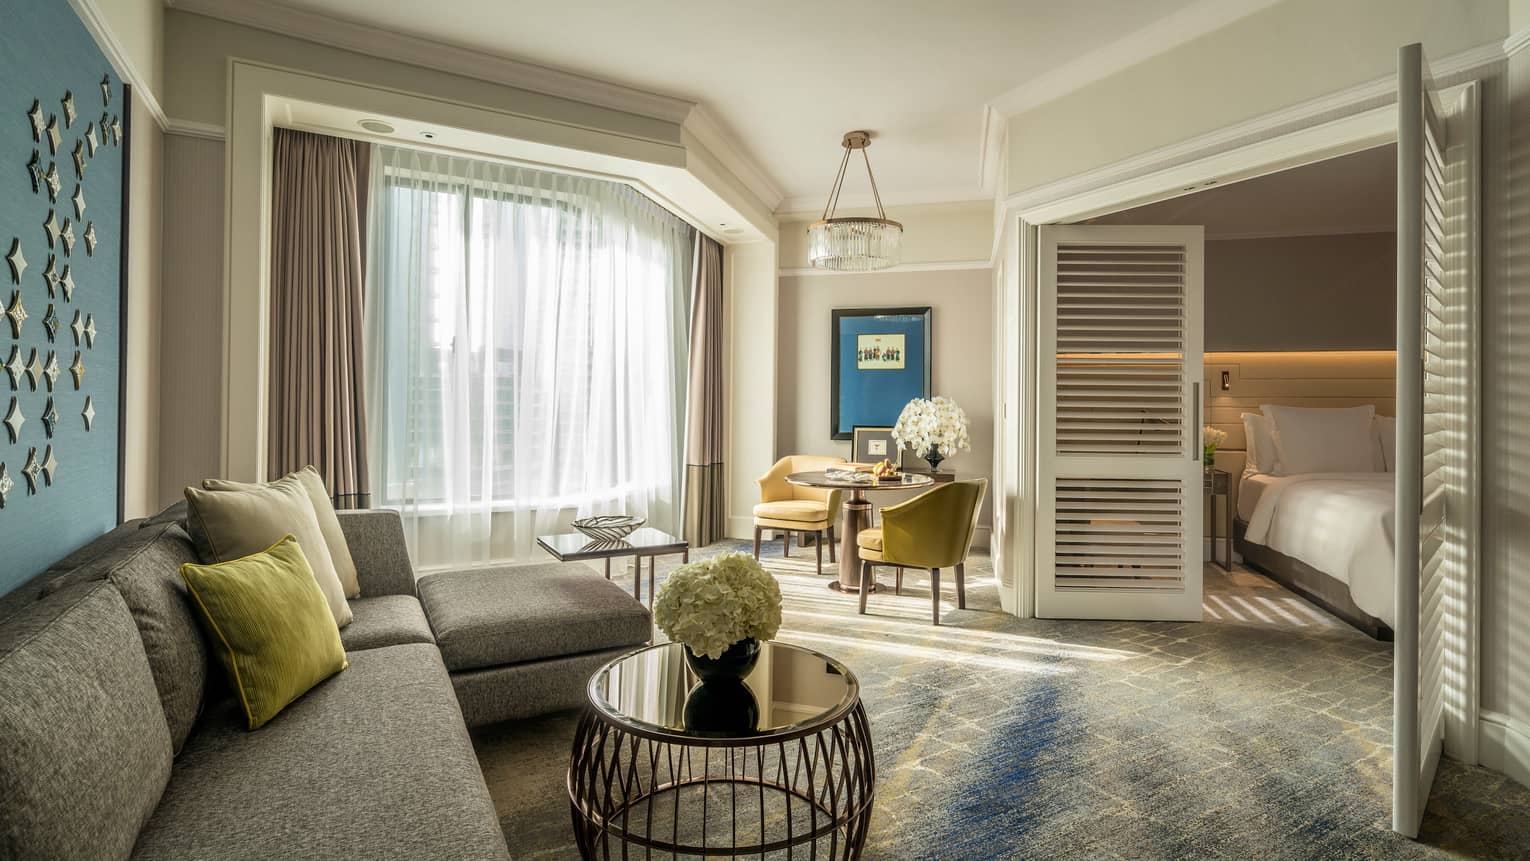 Four Seasons Executive Suite L-shaped sofa by sunny window with white curtains, table, wood shutters